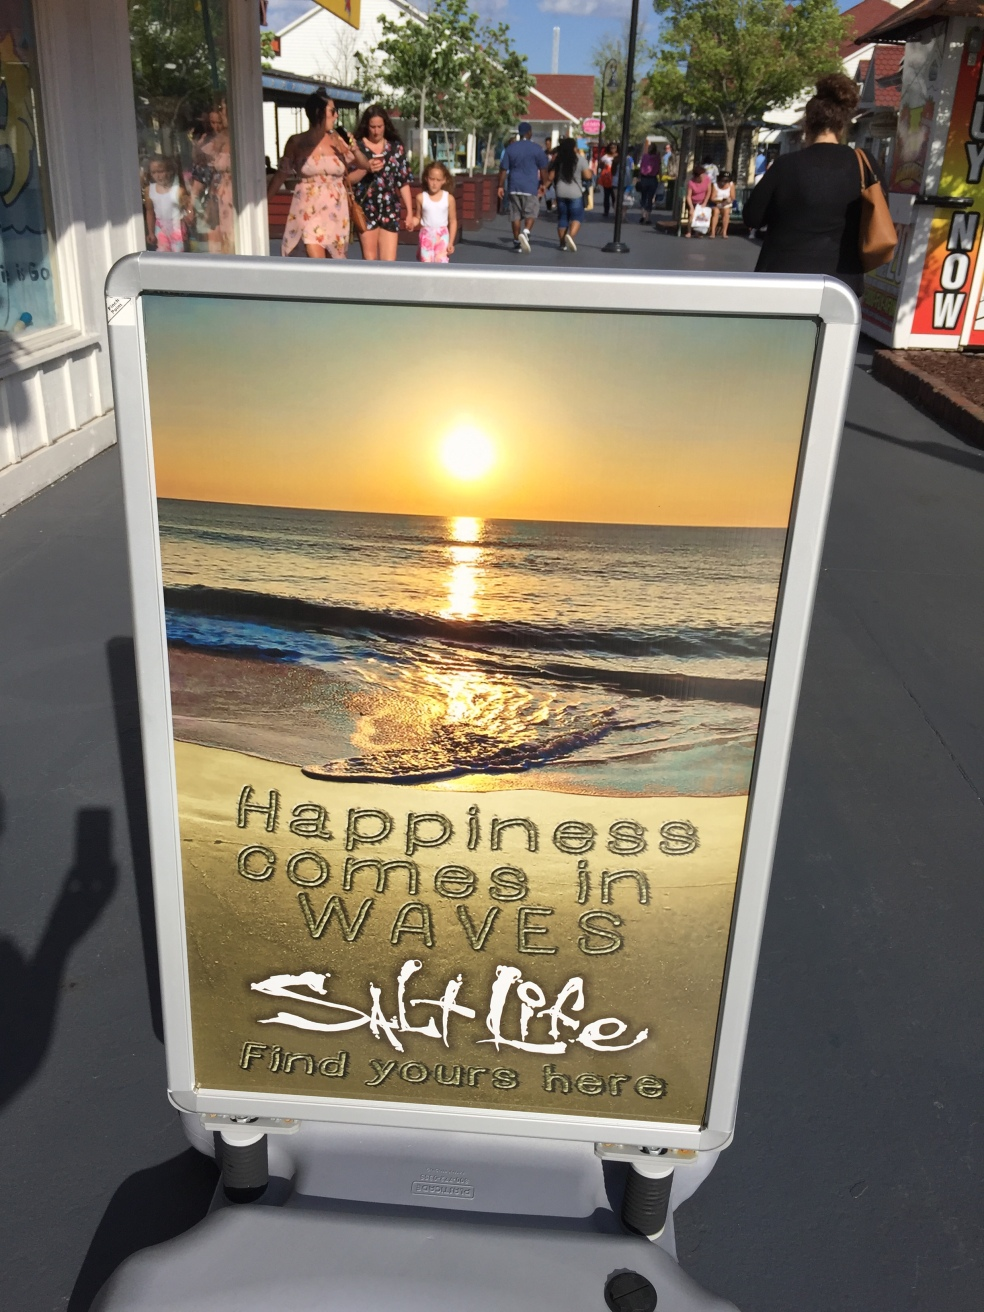 Sign about happiness